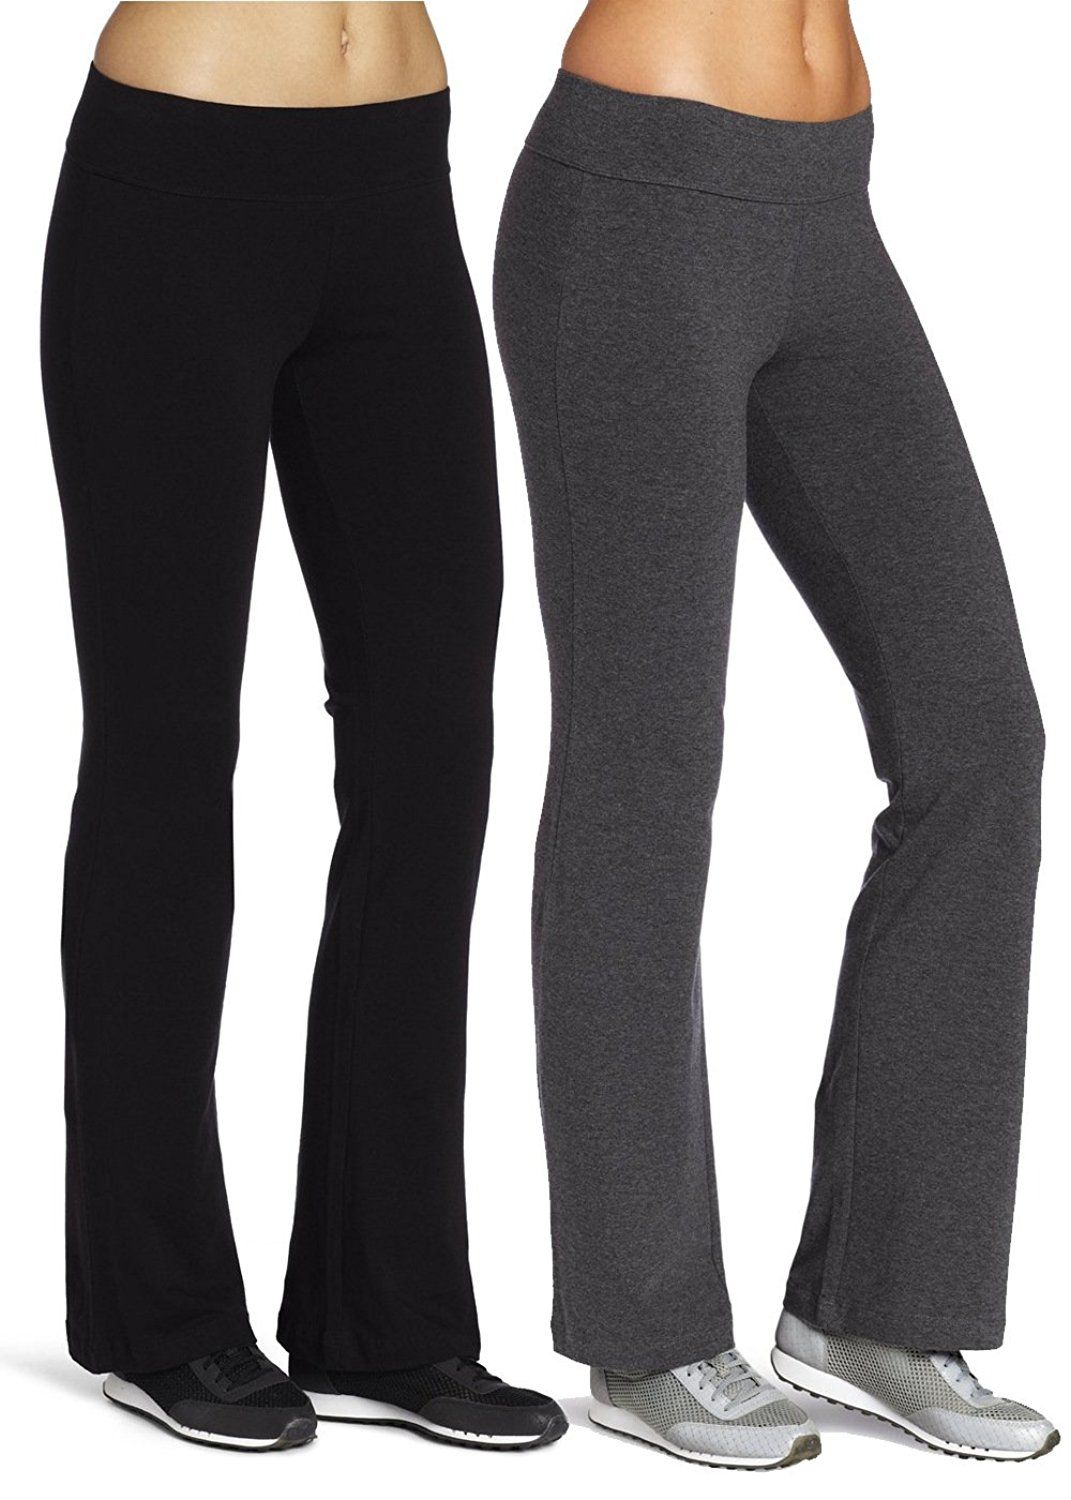 b4910eb1e6199b Lataly Women's Boot-Leg Yoga Pants >>> This is an Amazon Affiliate link.  Find out more about the great product at the image link.